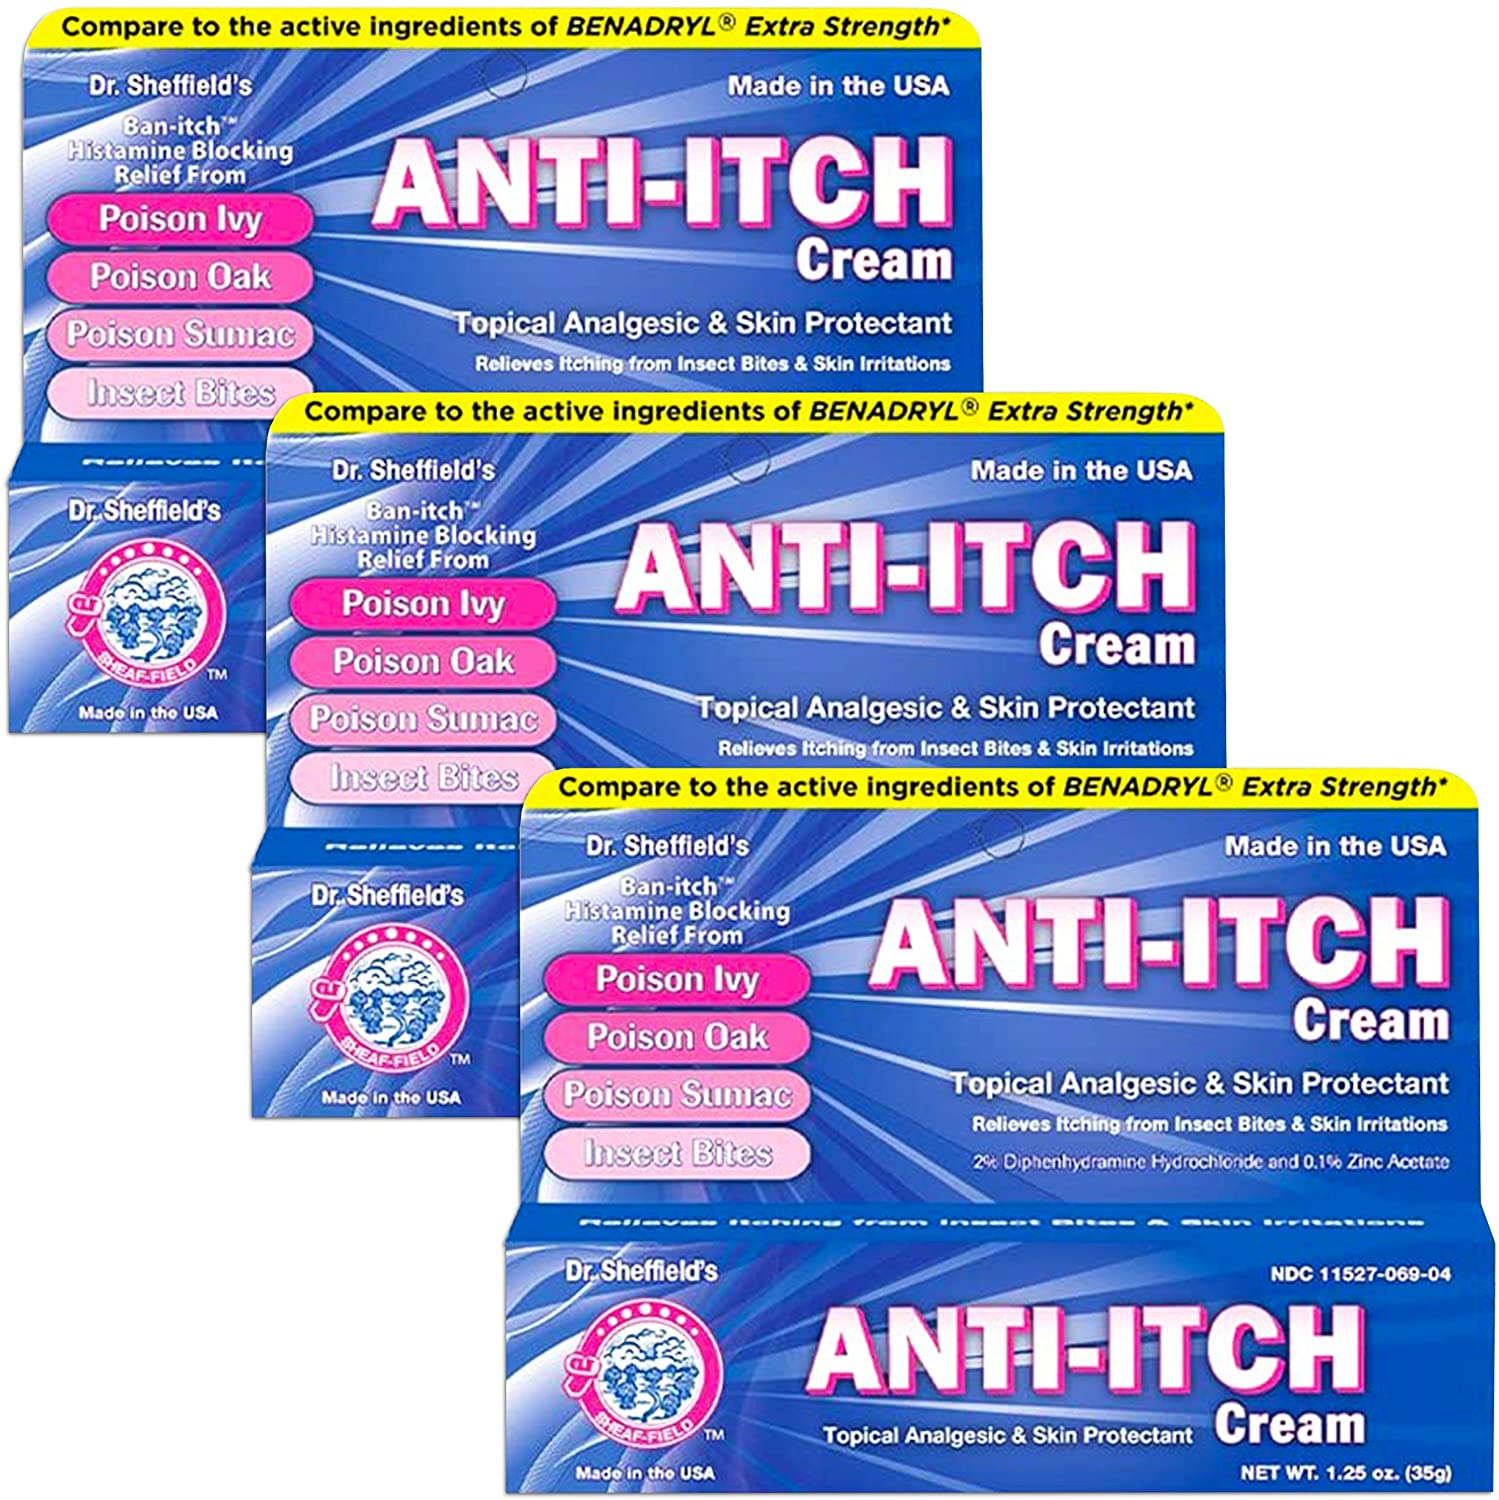 Dr. Sheffield's Anti-itch Cream with Histamine Blocker - 1.25 Oz. (3)